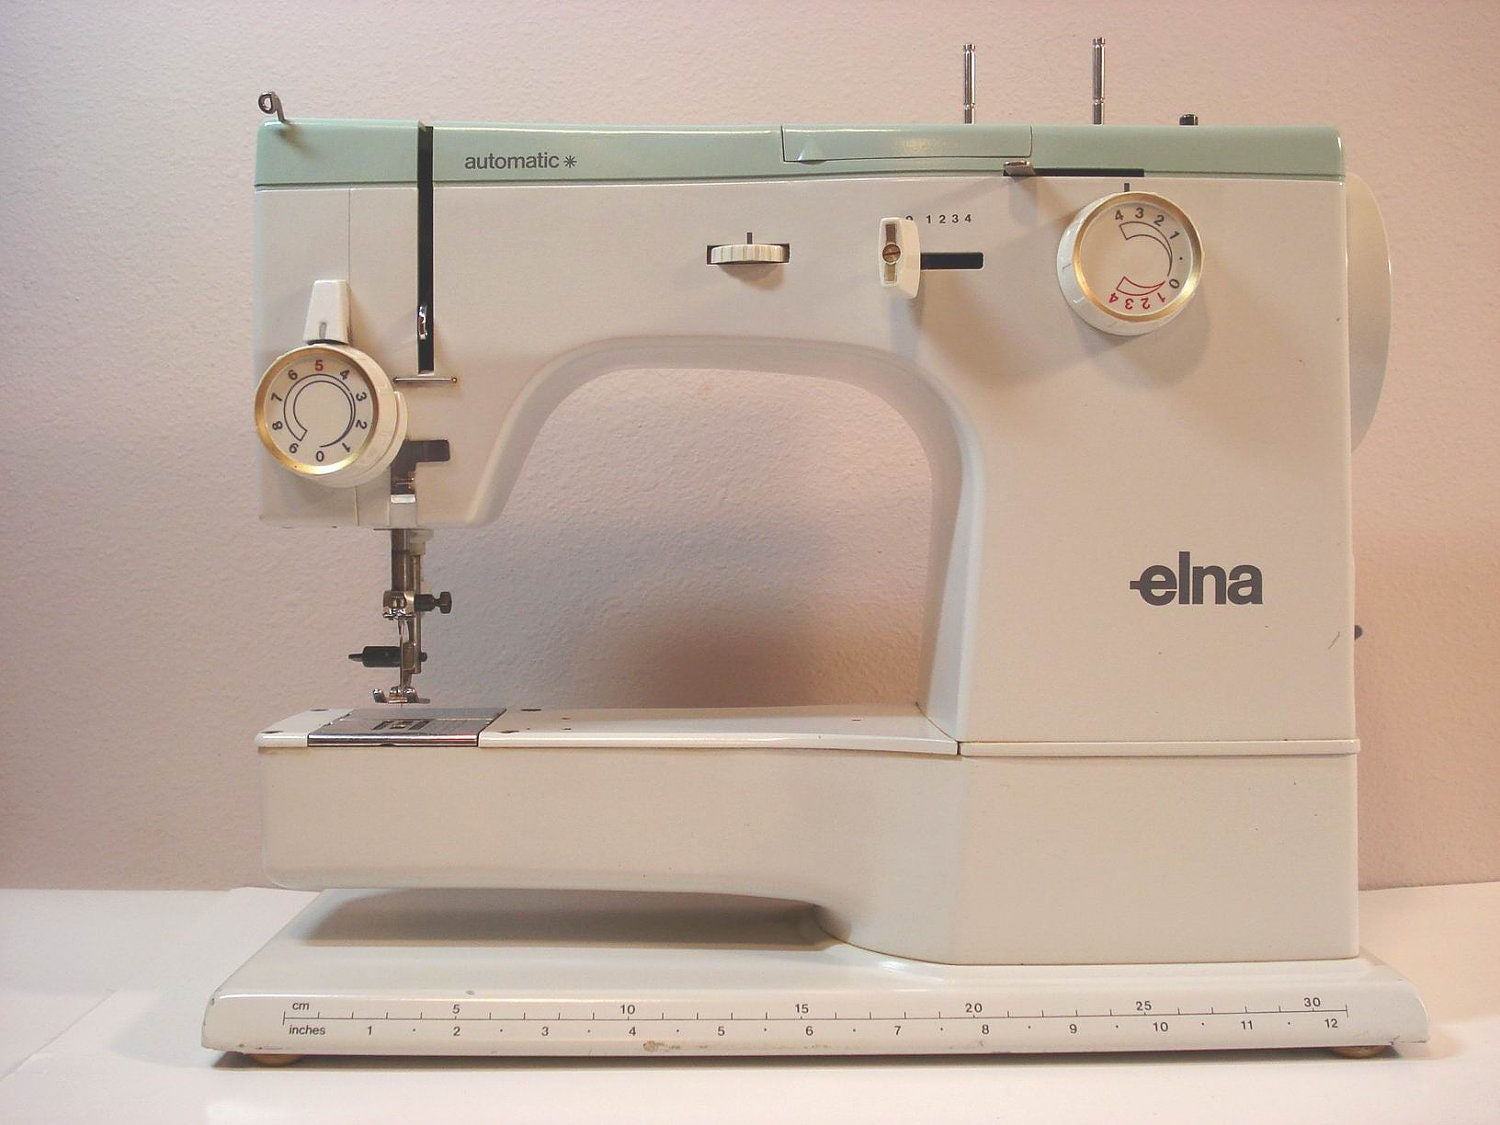 elna automatic portable sewing machine. Black Bedroom Furniture Sets. Home Design Ideas